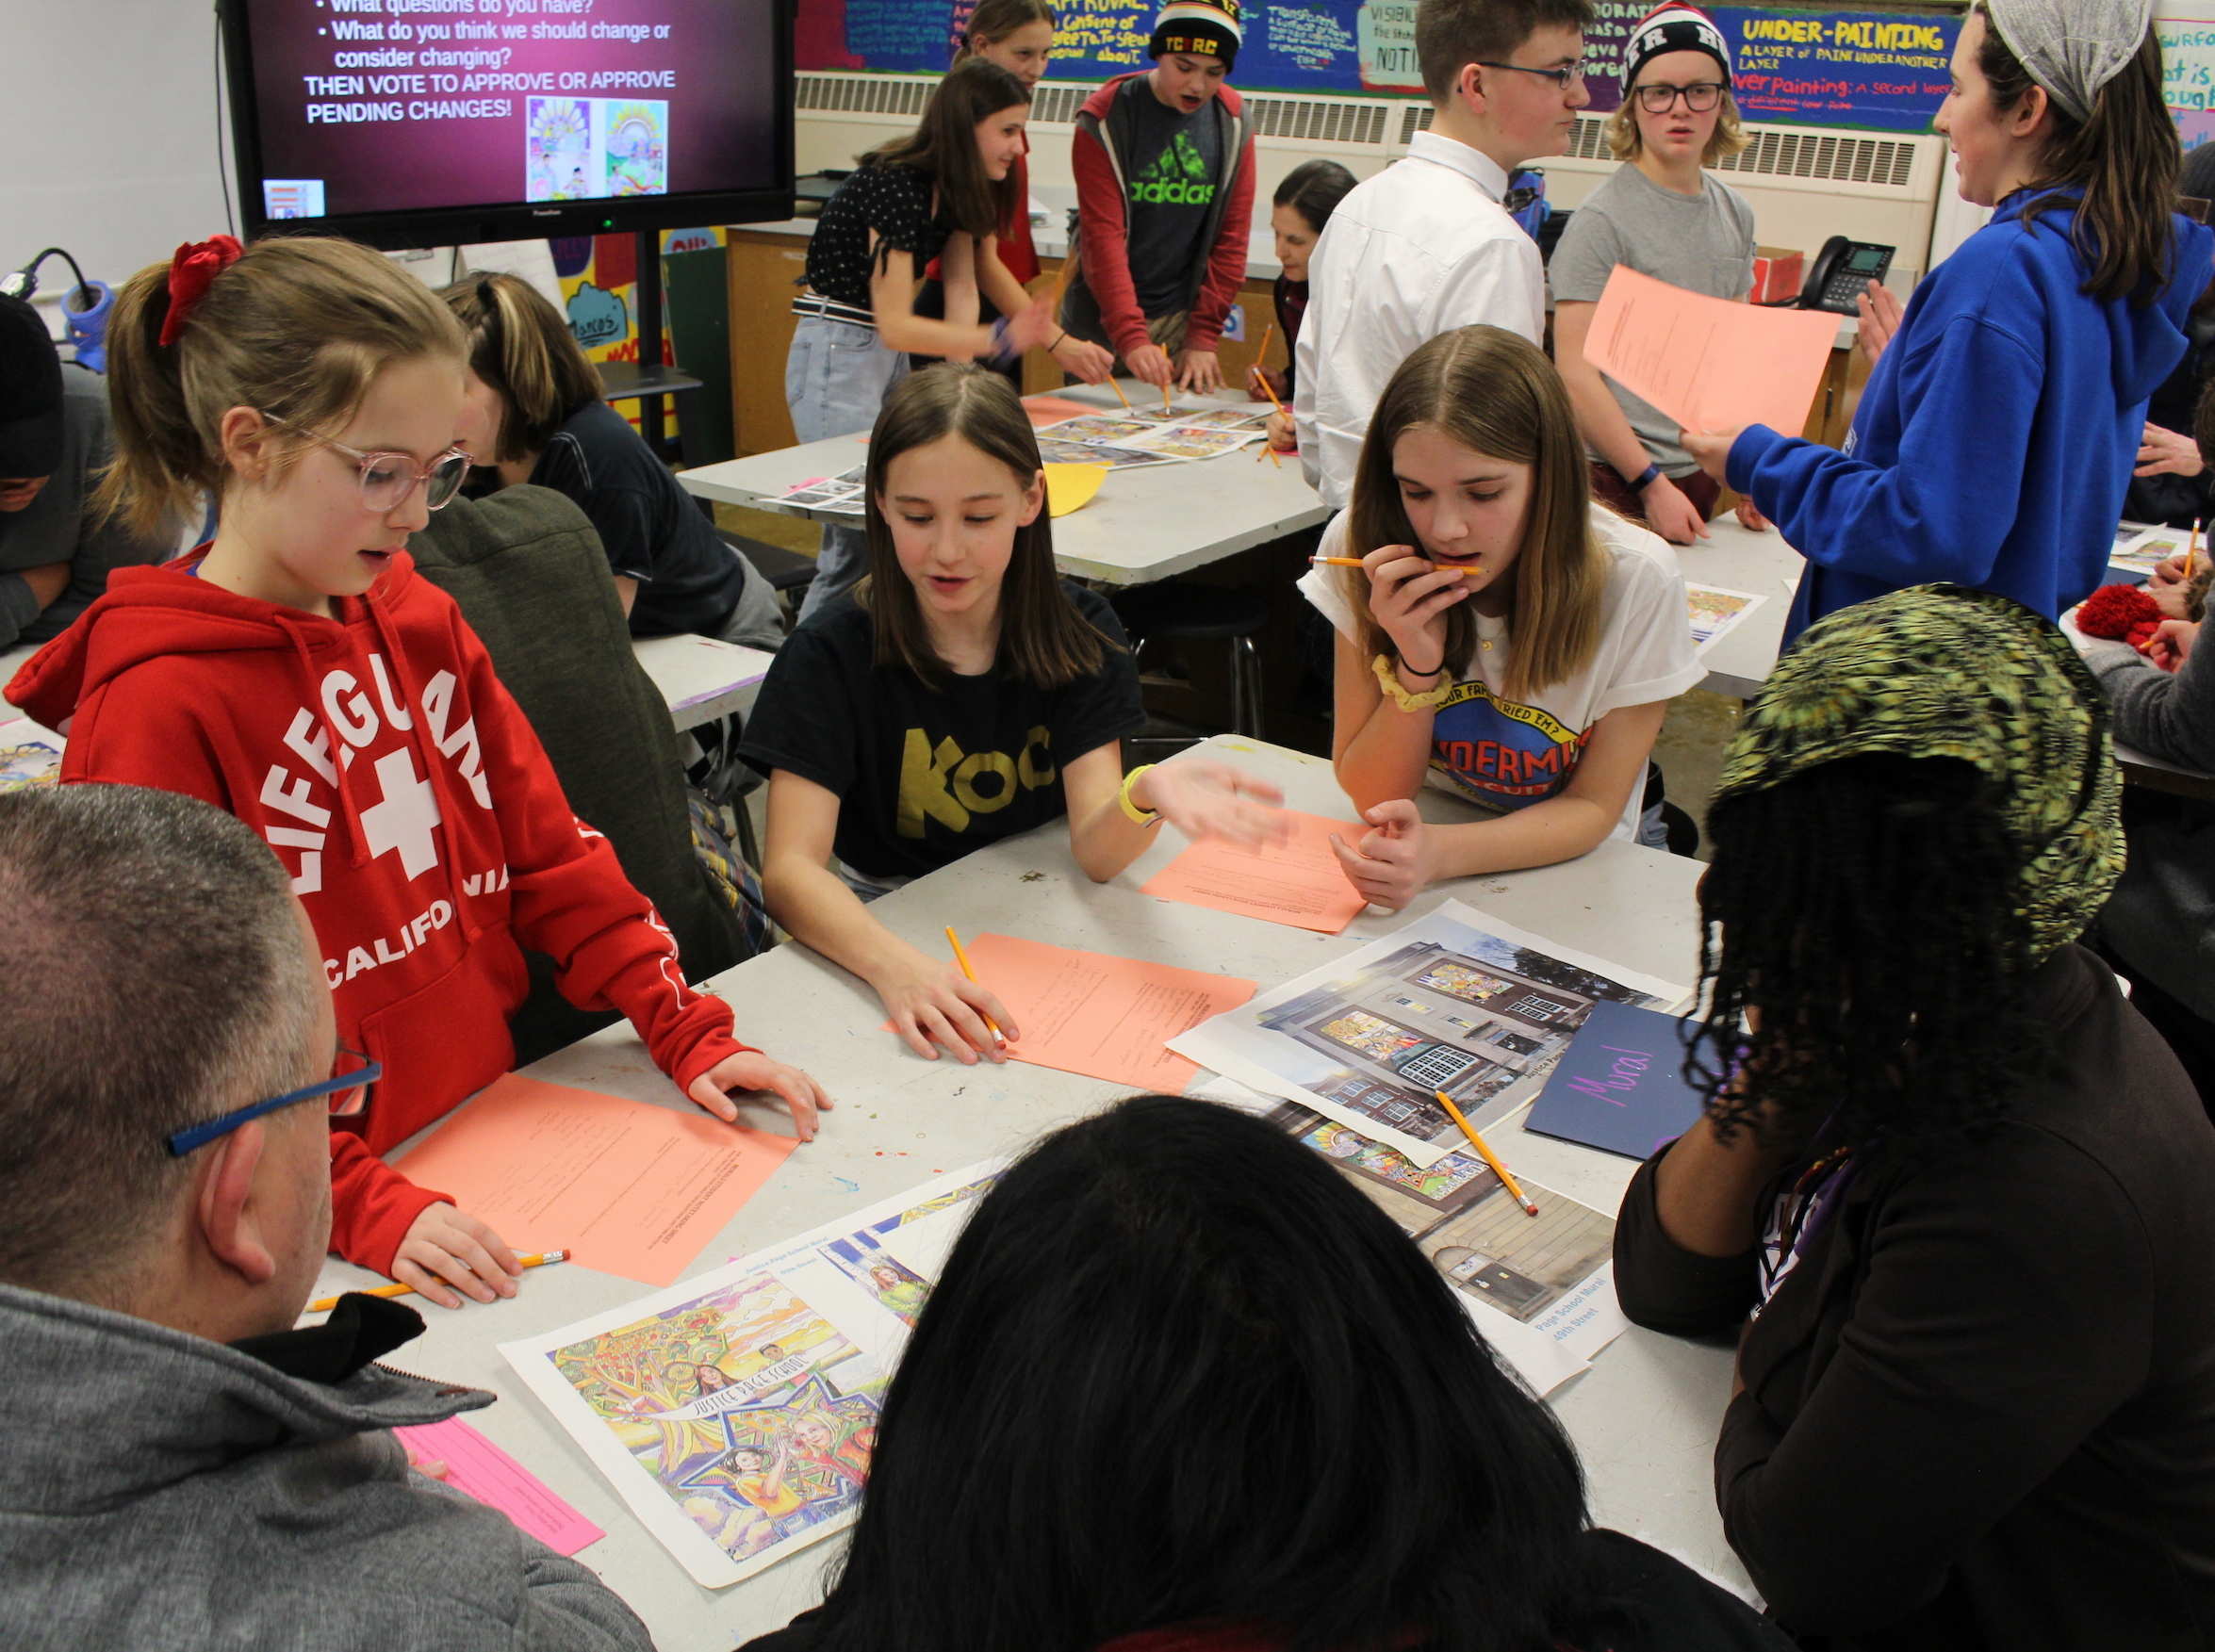 Students in a Justice Page Middle School art class gather feedback on designs for murals that will hang outside the school. Photo by Nate Gotlieb